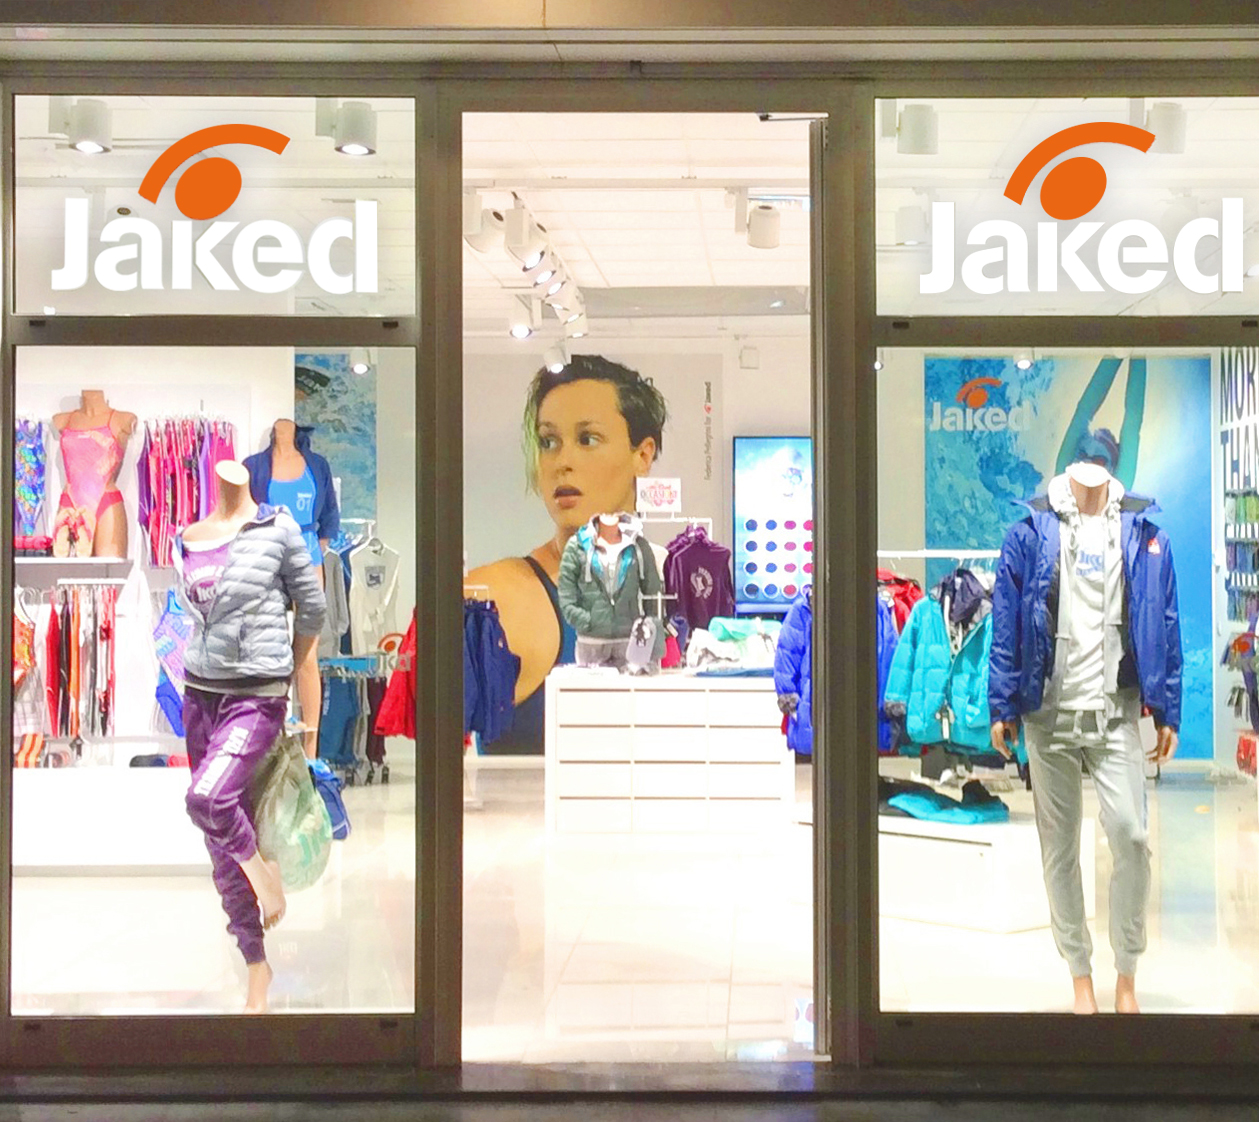 Store Jaked a Napoli